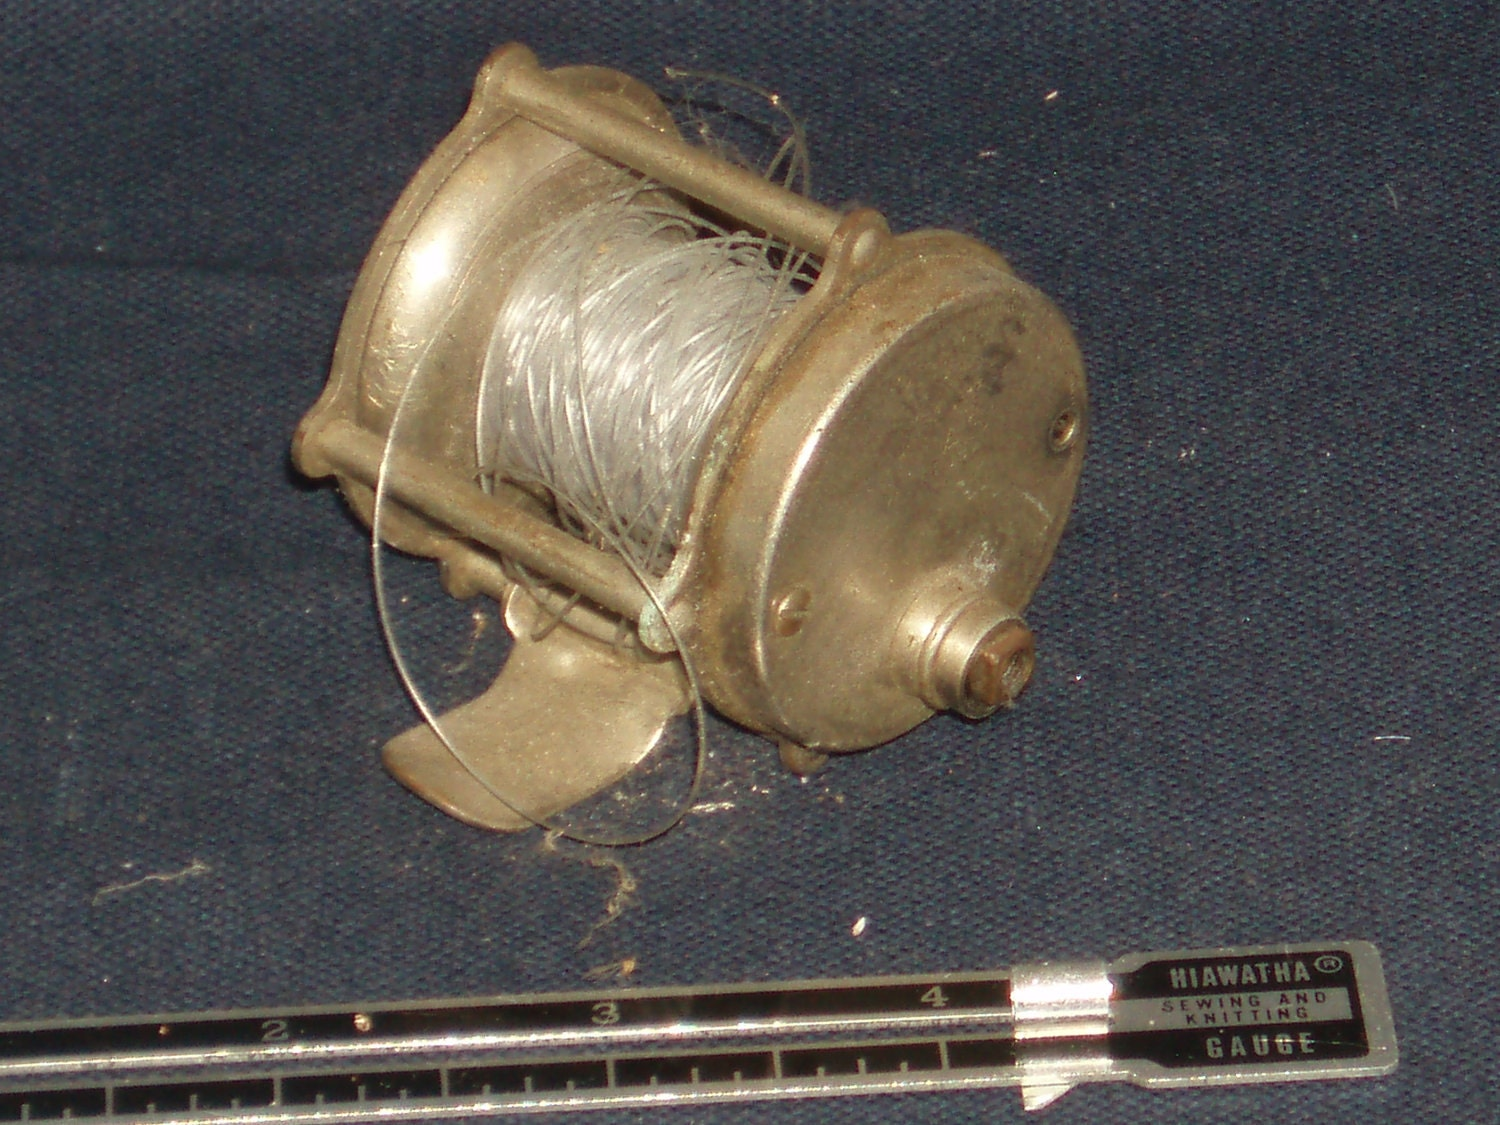 1935 vintage portage atlas fishing reel made in usa for American made fishing reels